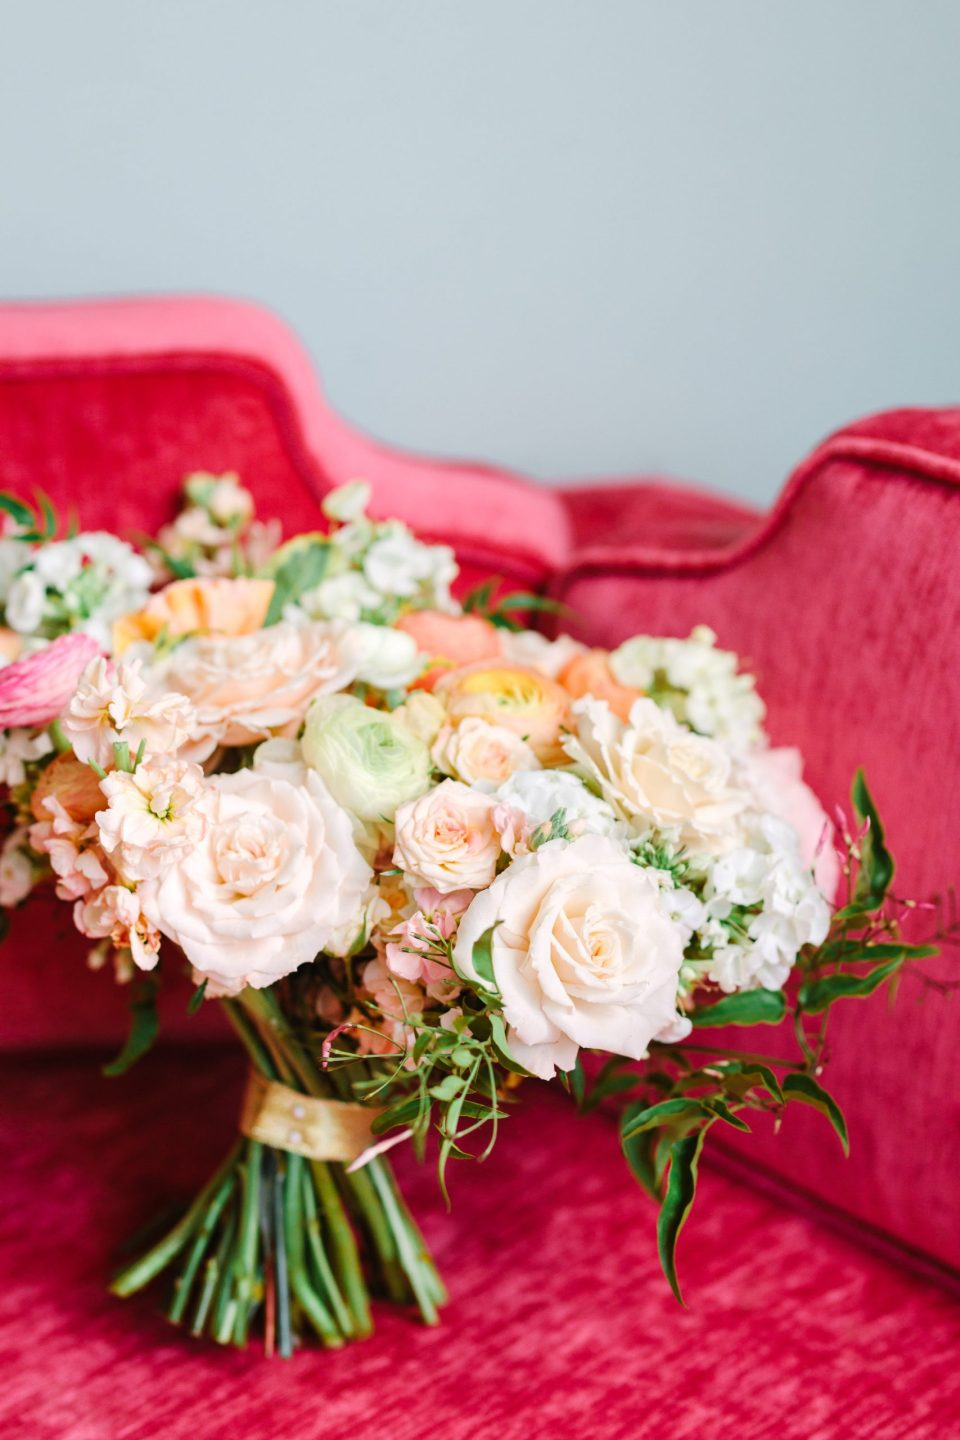 Bridal bouquet on pink couch by Mary Costa Photography